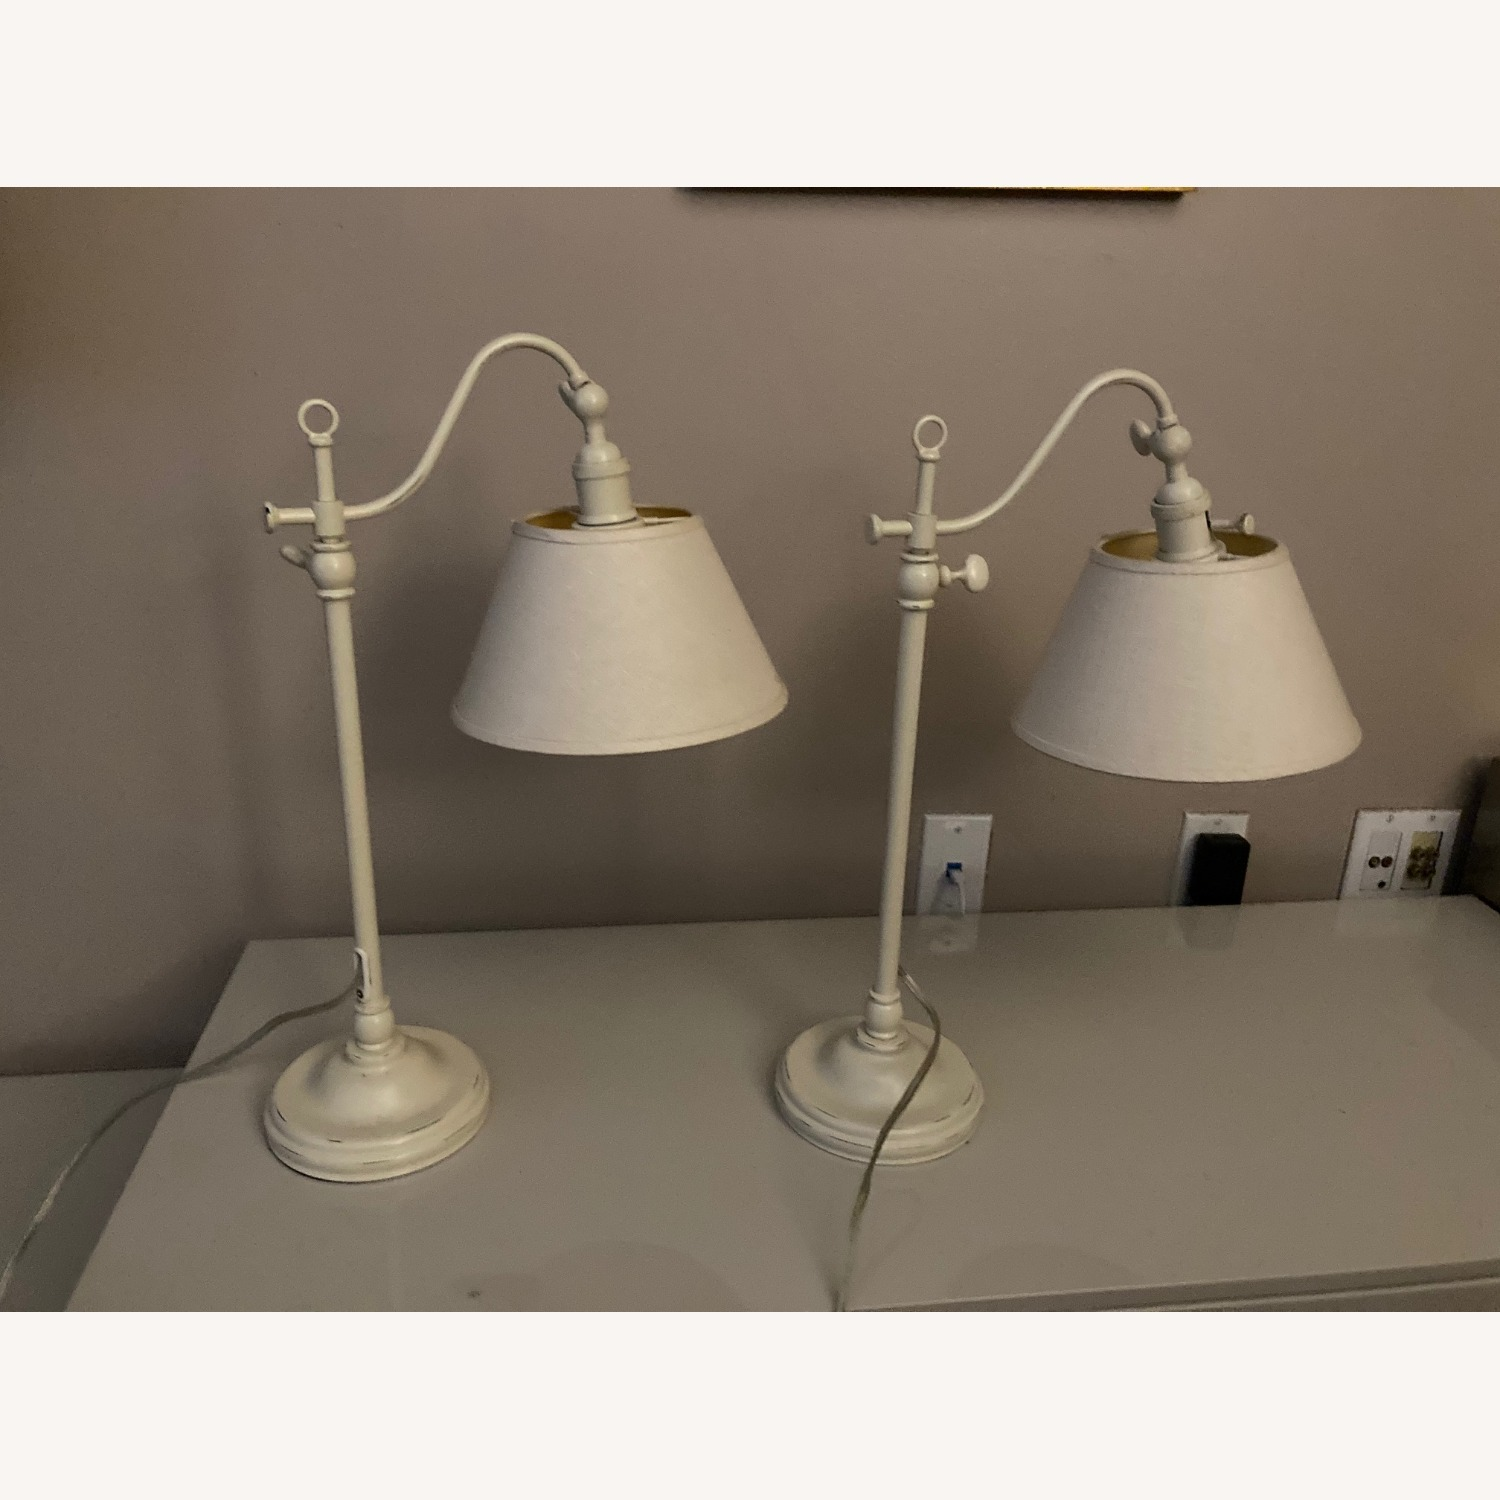 Pottery Barn Side Lamps - image-1